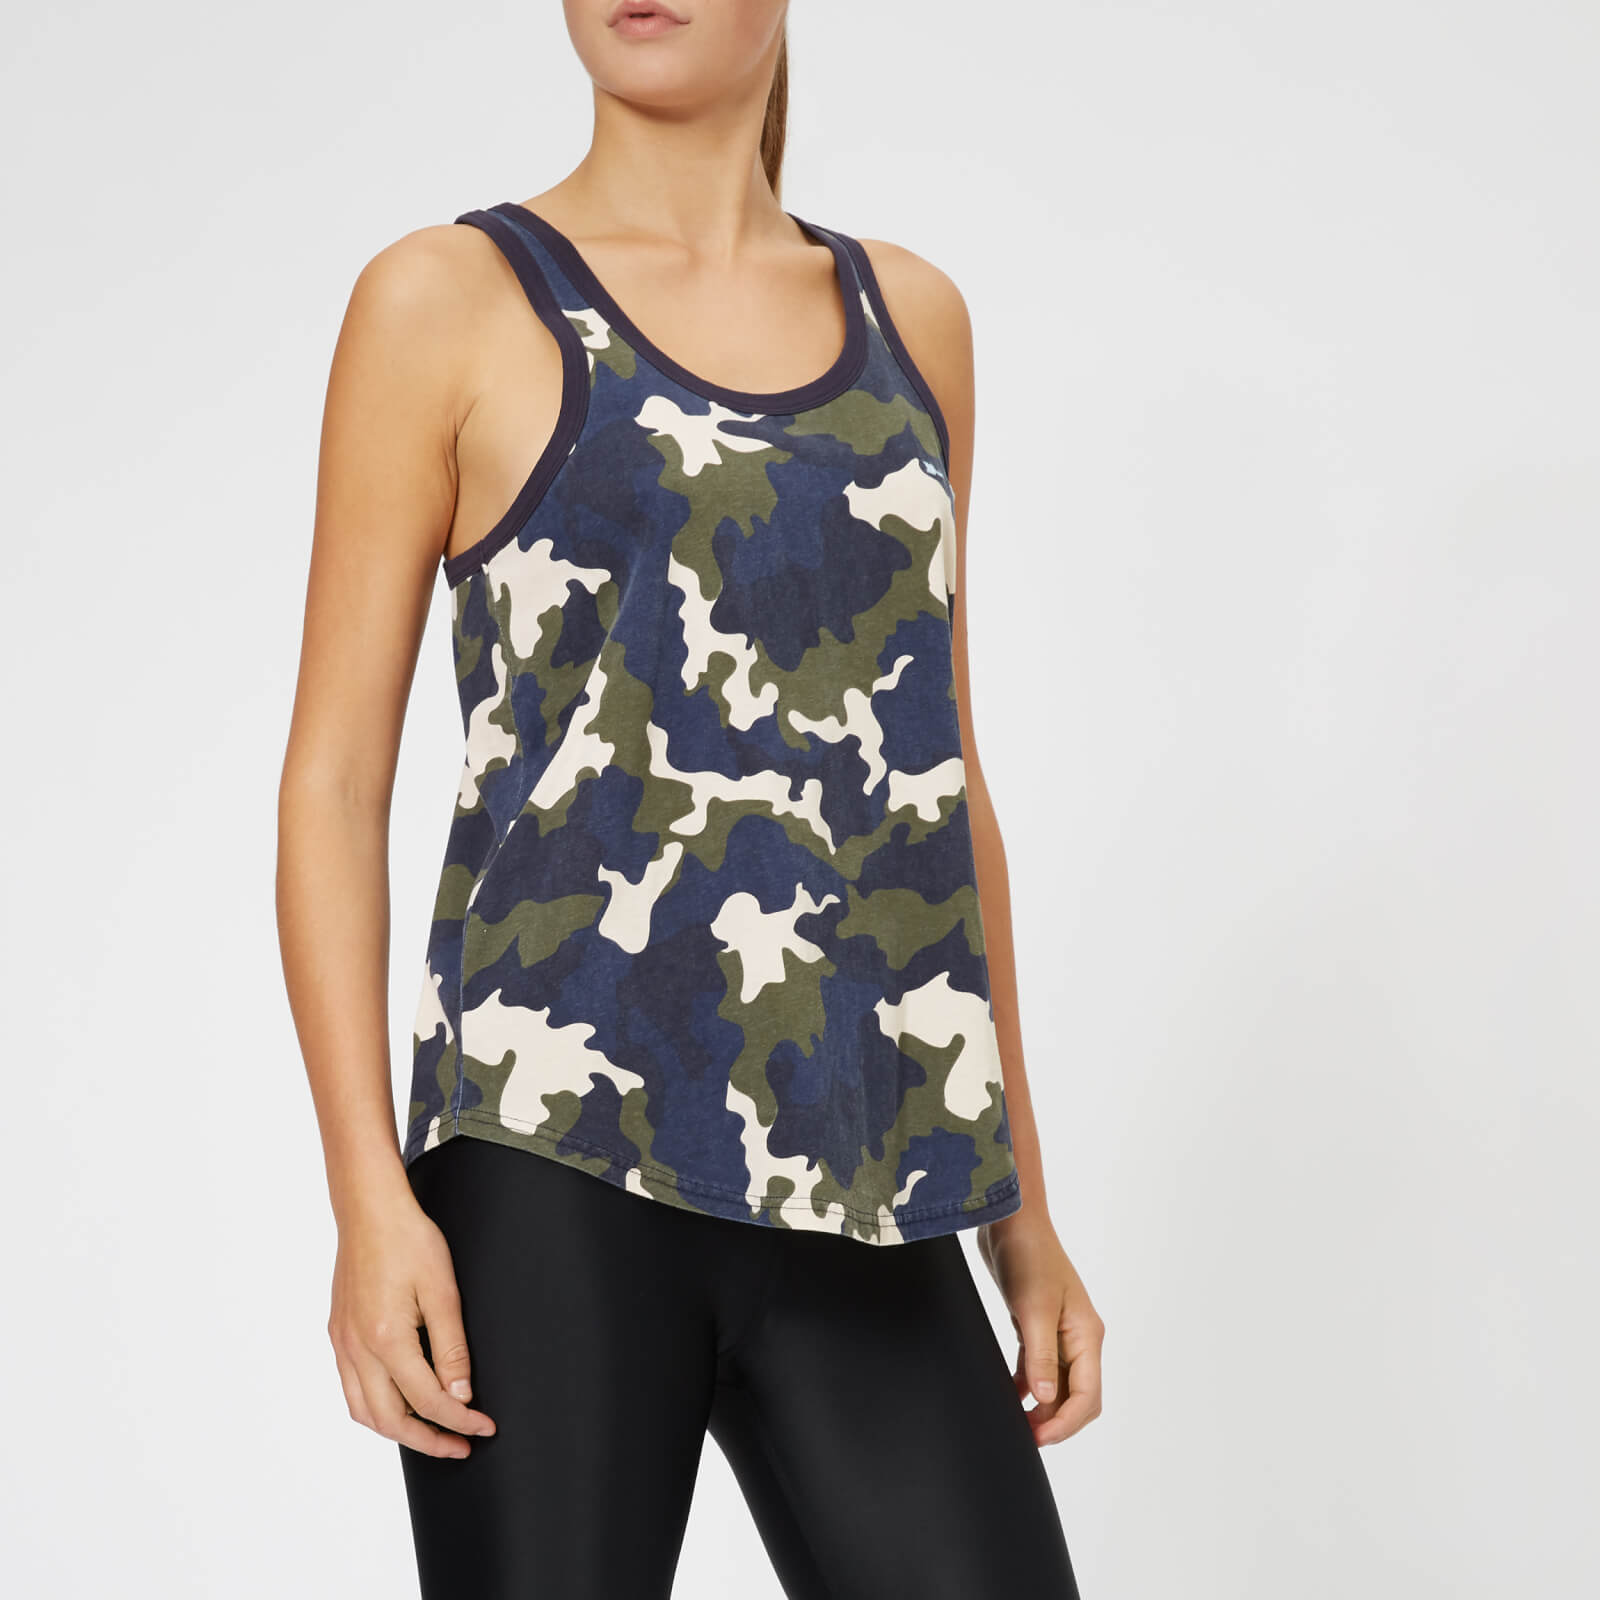 4b1f969adf703 The Upside Women's French Camo Issy Tank Top - Camo Print - Free UK  Delivery over £50